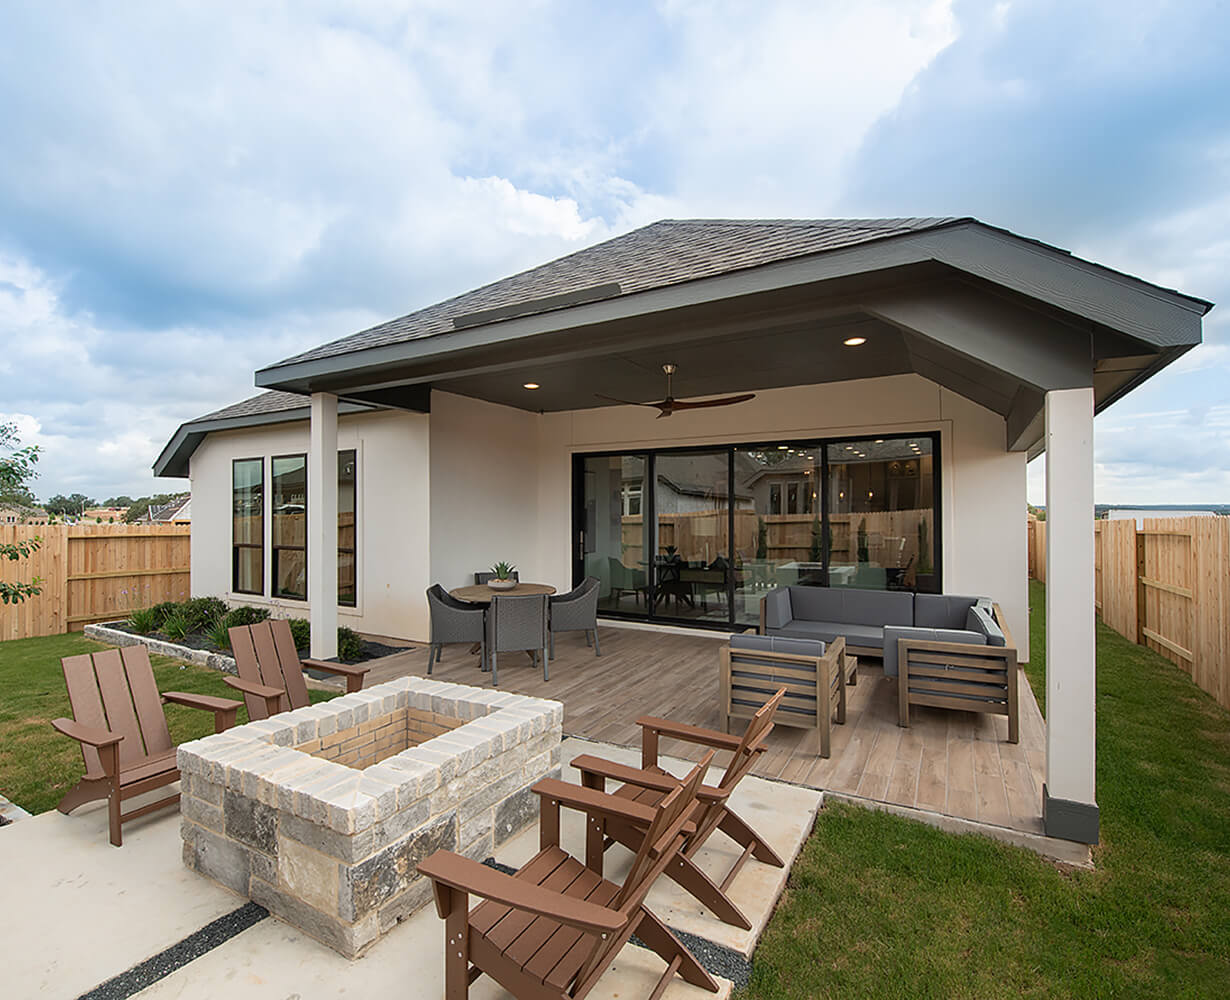 Perry Homes Backyard Outdoor Living Area with Firepit Photo